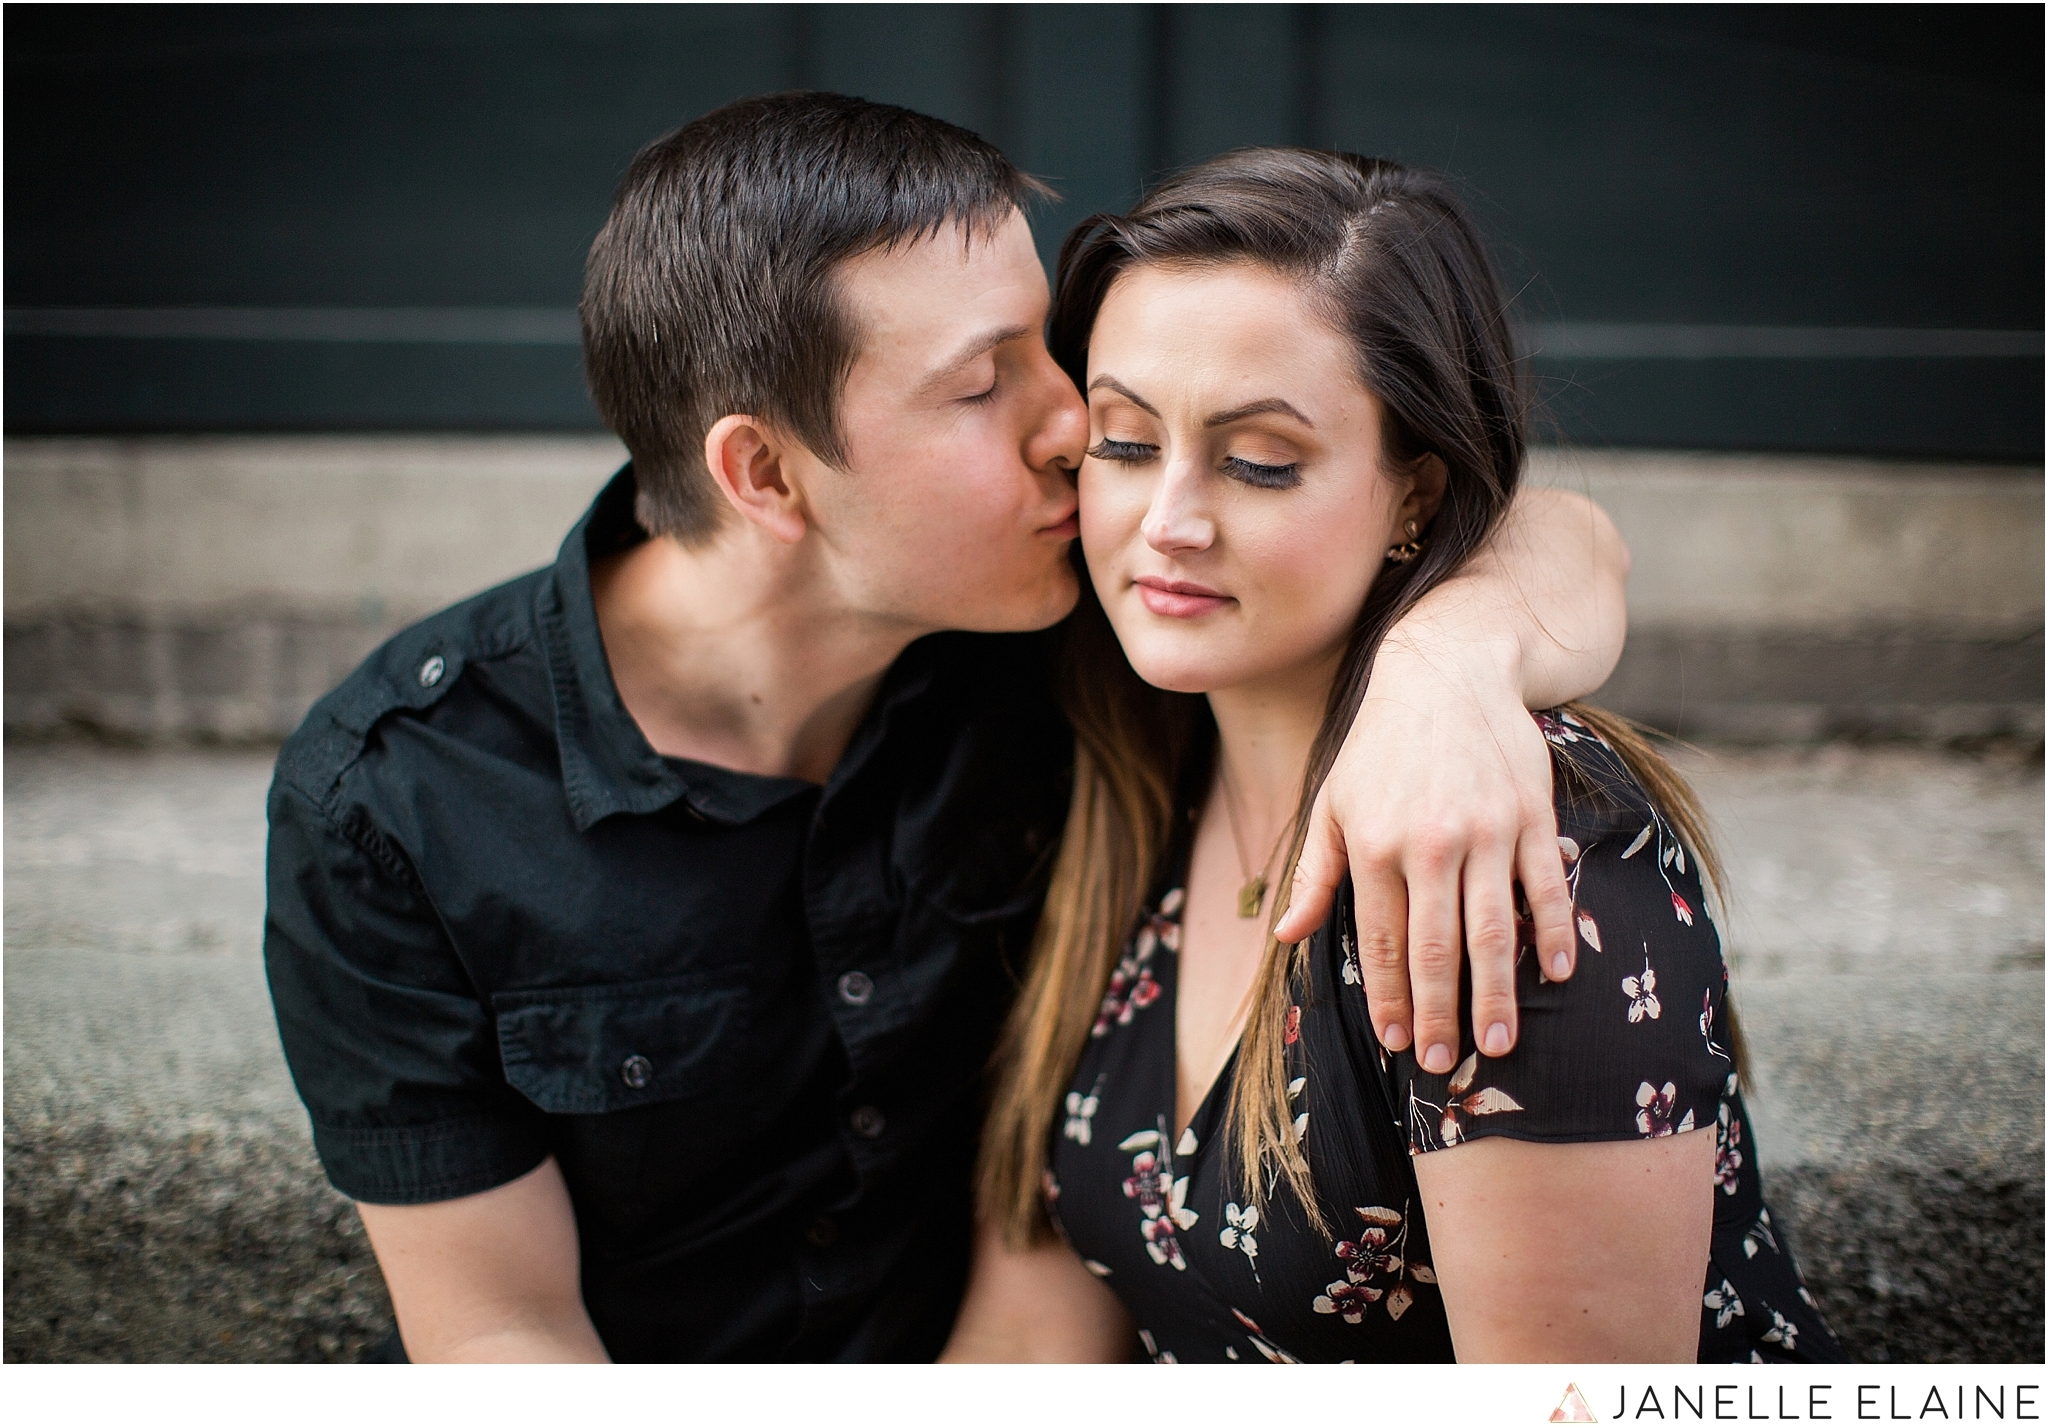 karen ethan-georgetown engagement photos-seattle-janelle elaine photography-9.jpg